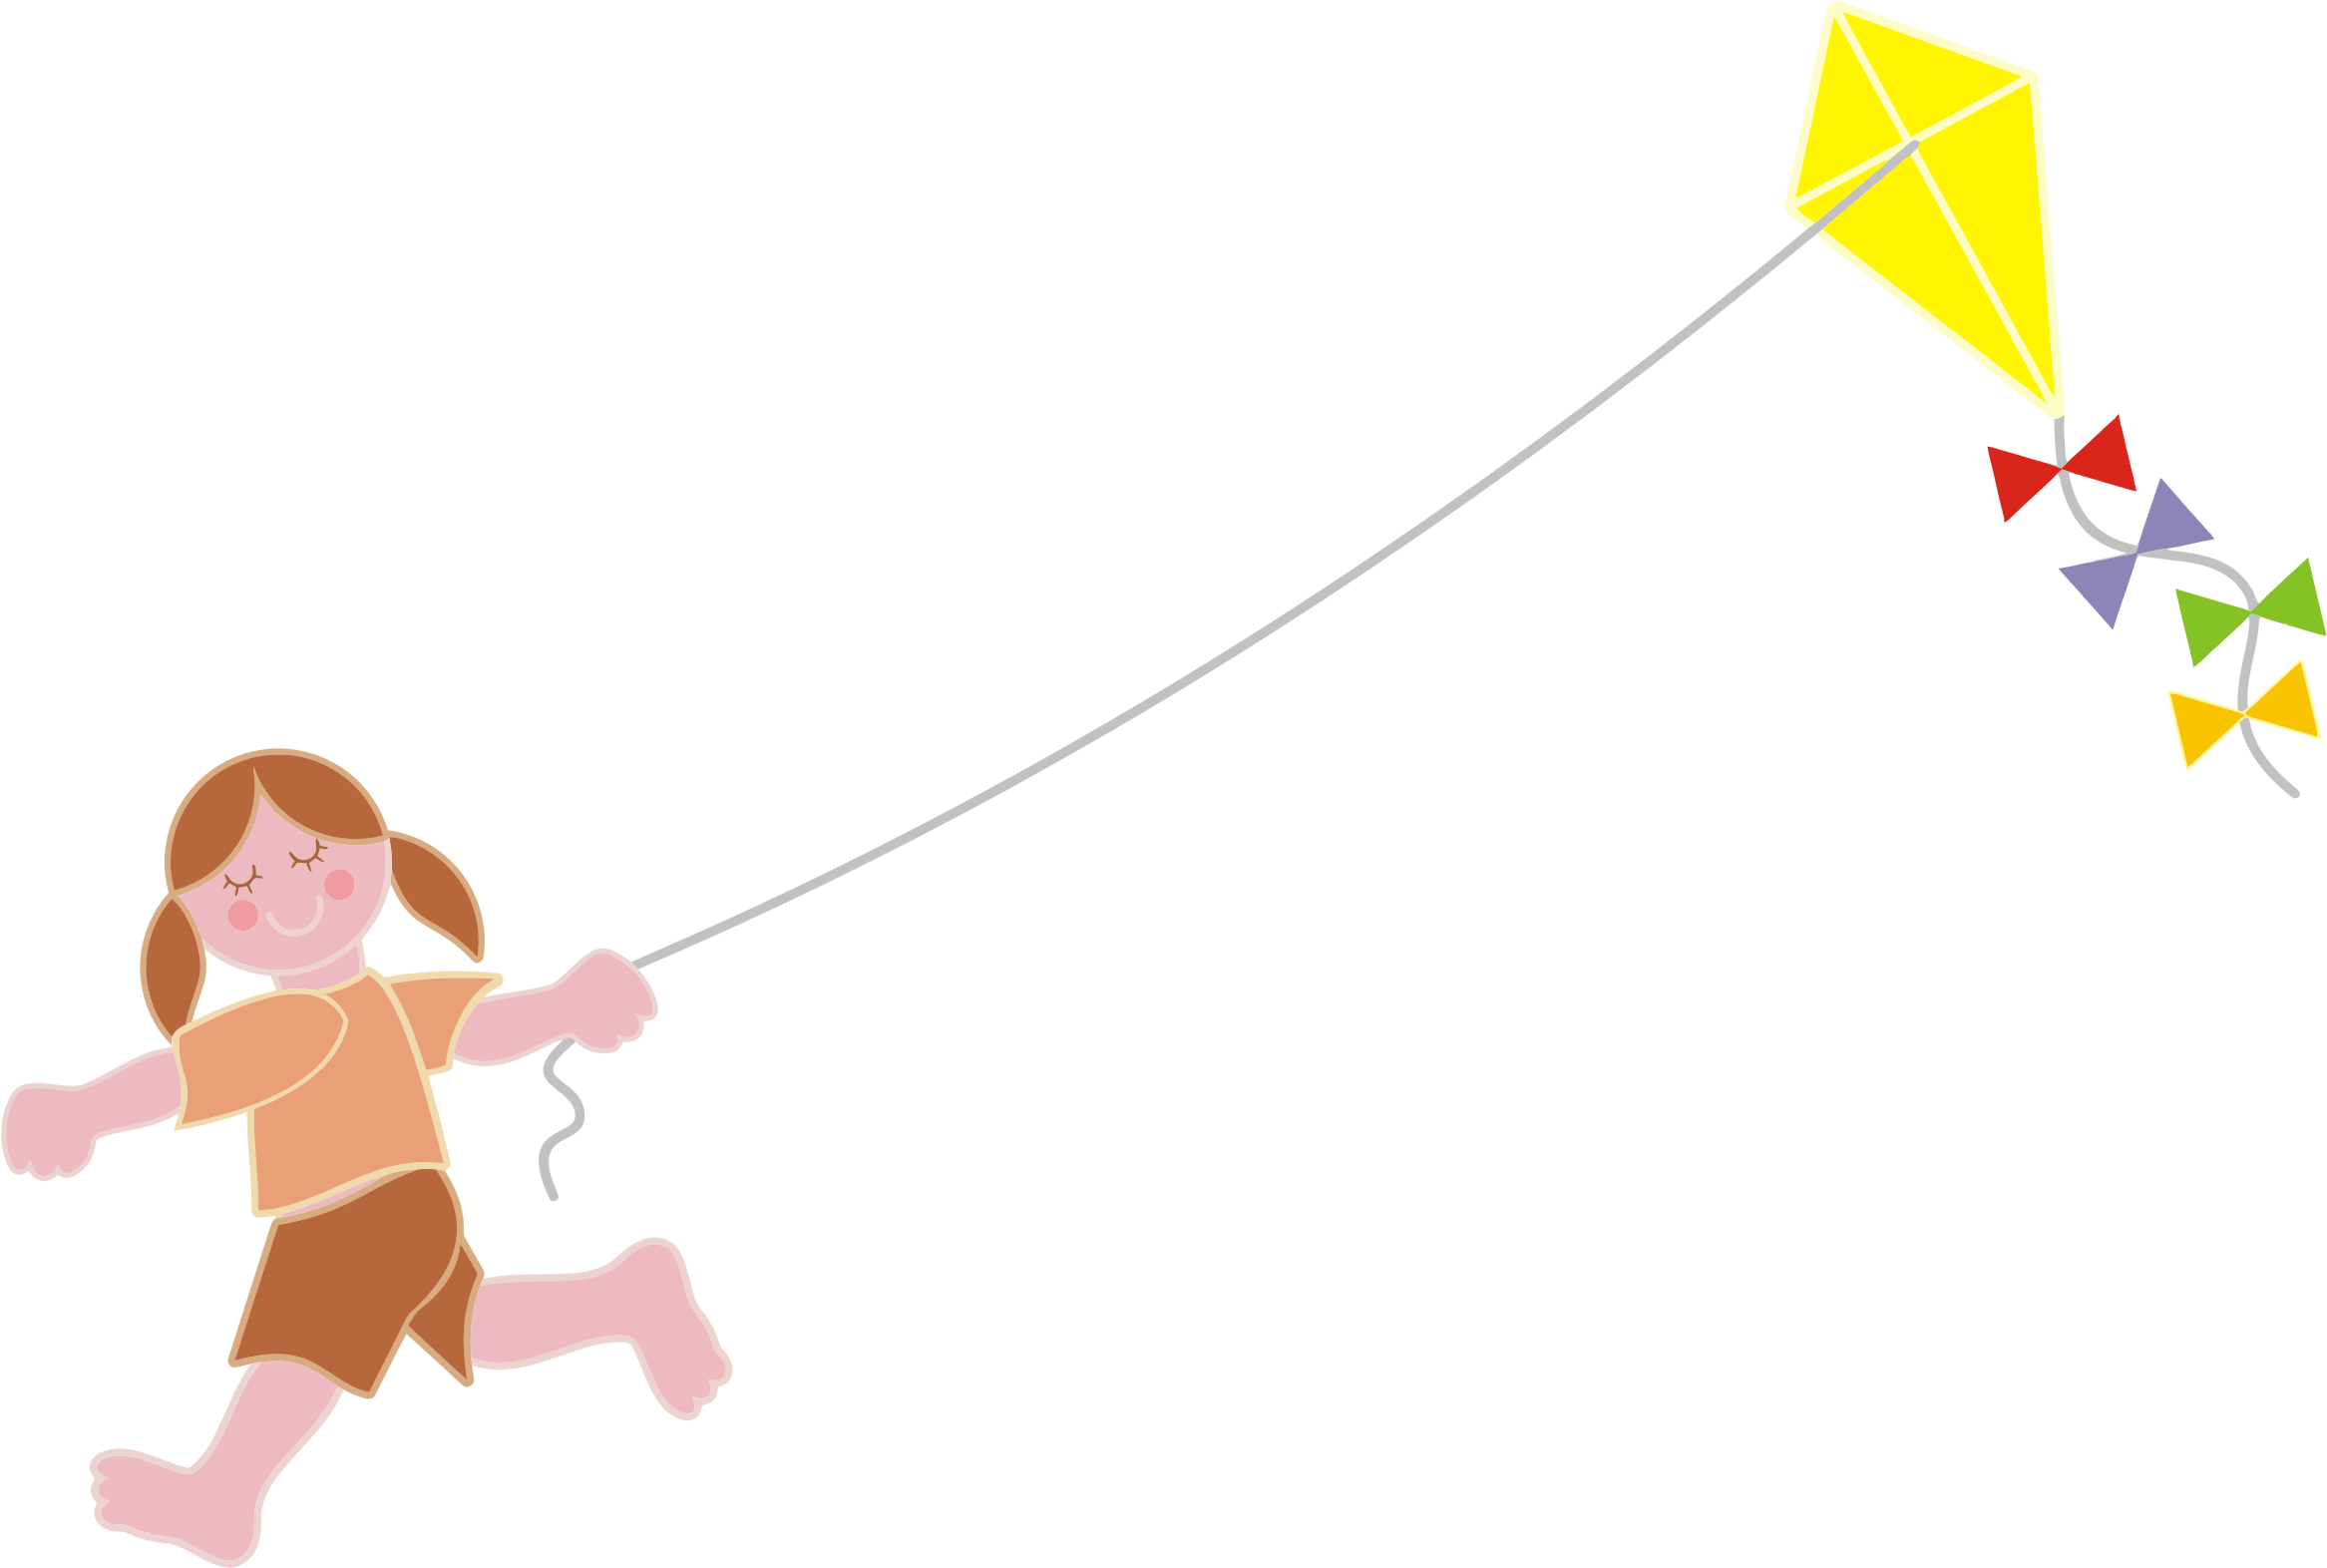 Fly clipart filthy. Go a kite bonkers